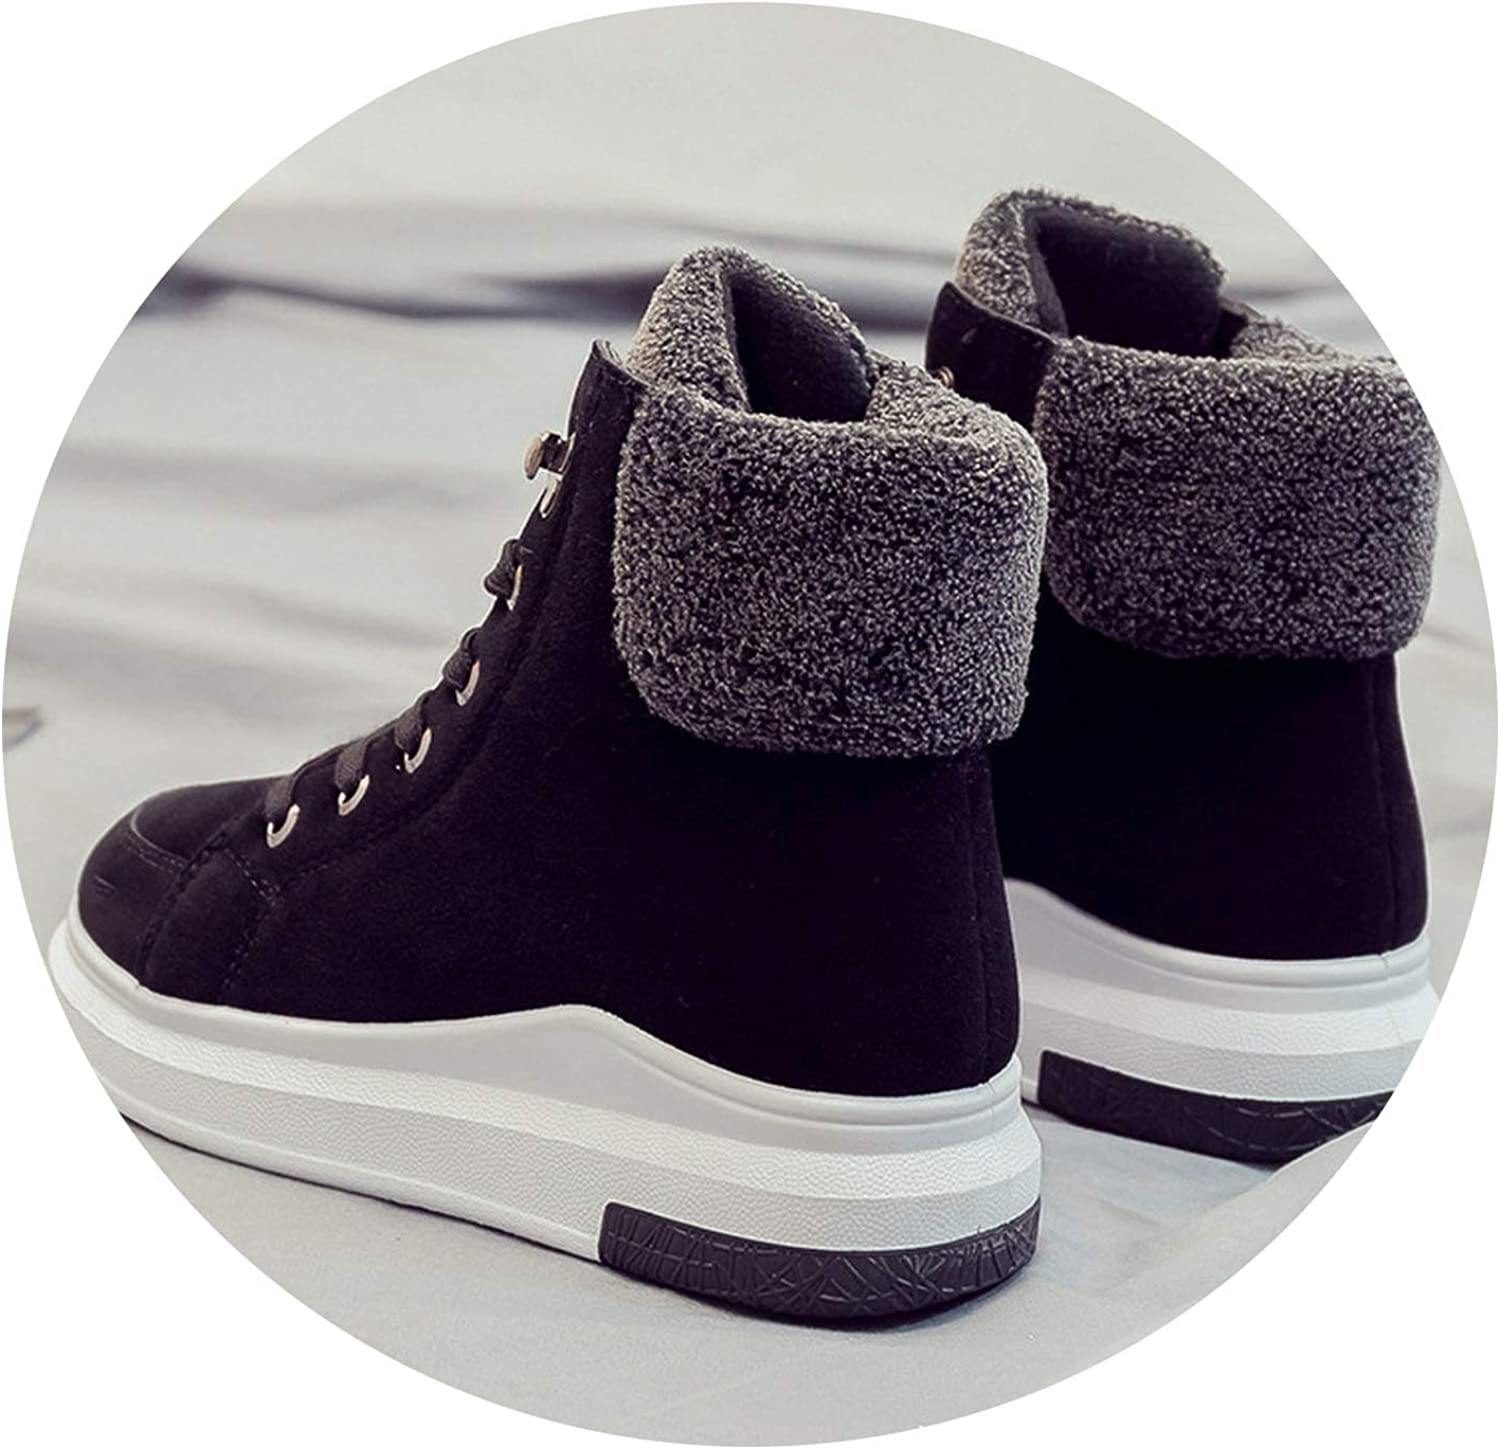 Women Ankle Boots Autumn Winter Short Pkush Keep Warm Boots shoes Woman Lace Up Round Woe for Women shoes